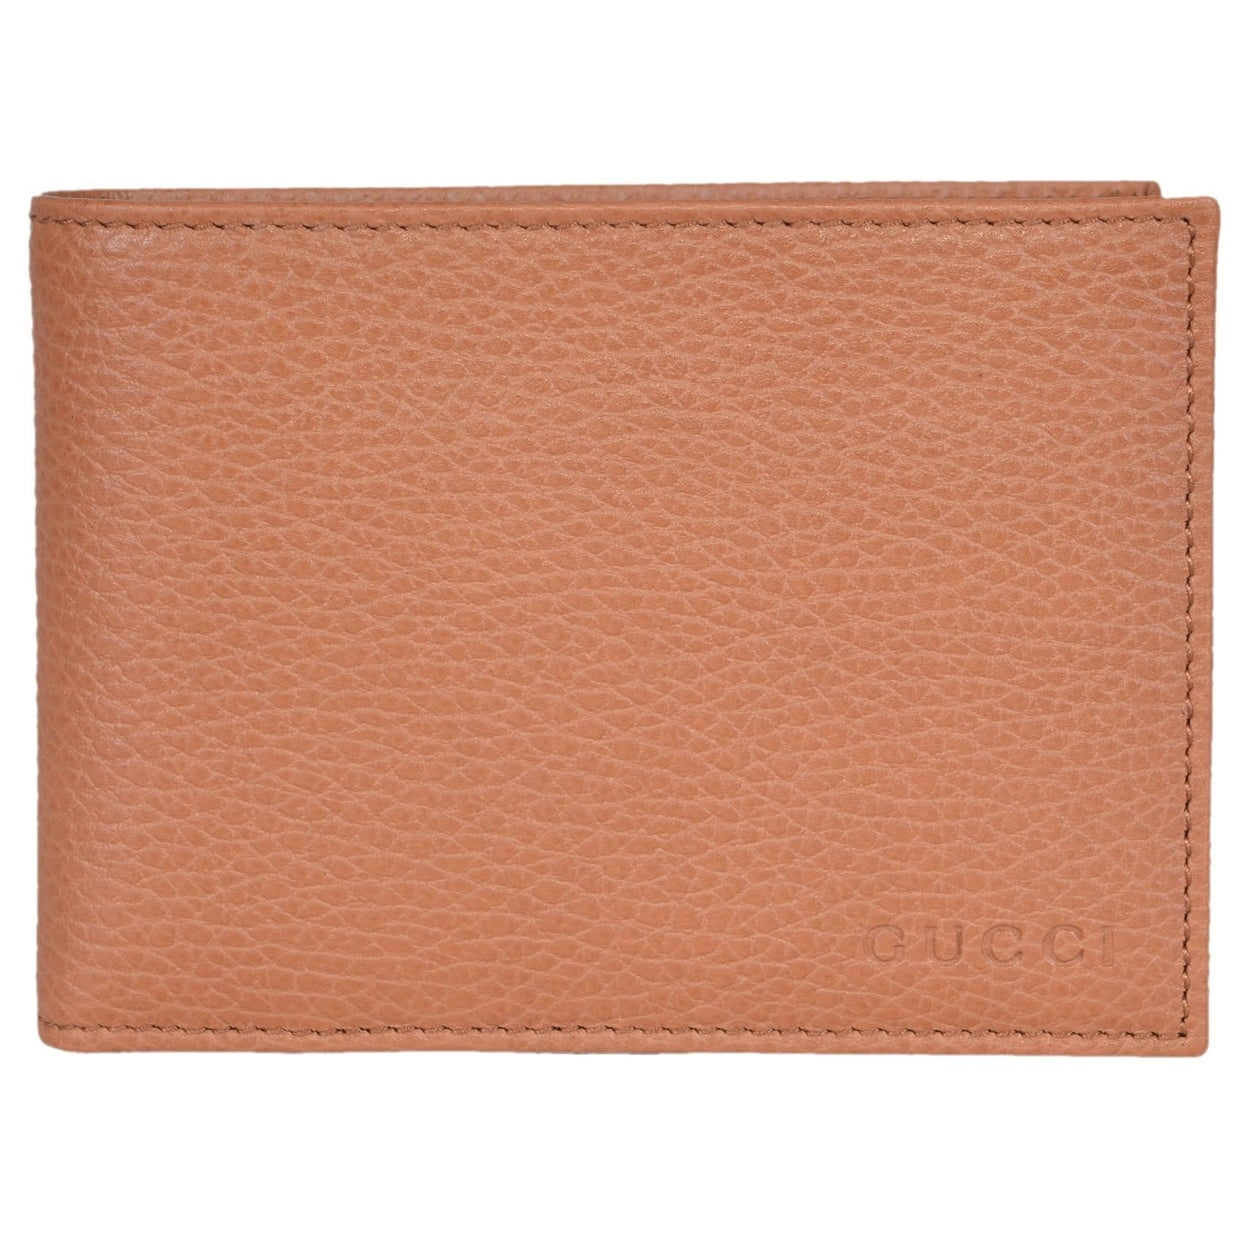 7c4897458e6 Shop Gucci Men s 292534 Saffron Tan Textured Leather W Coin Large Bifold  Wallet - 5.25 x 3.75 inches - On Sale - Free Shipping Today - Overstock -  15296739